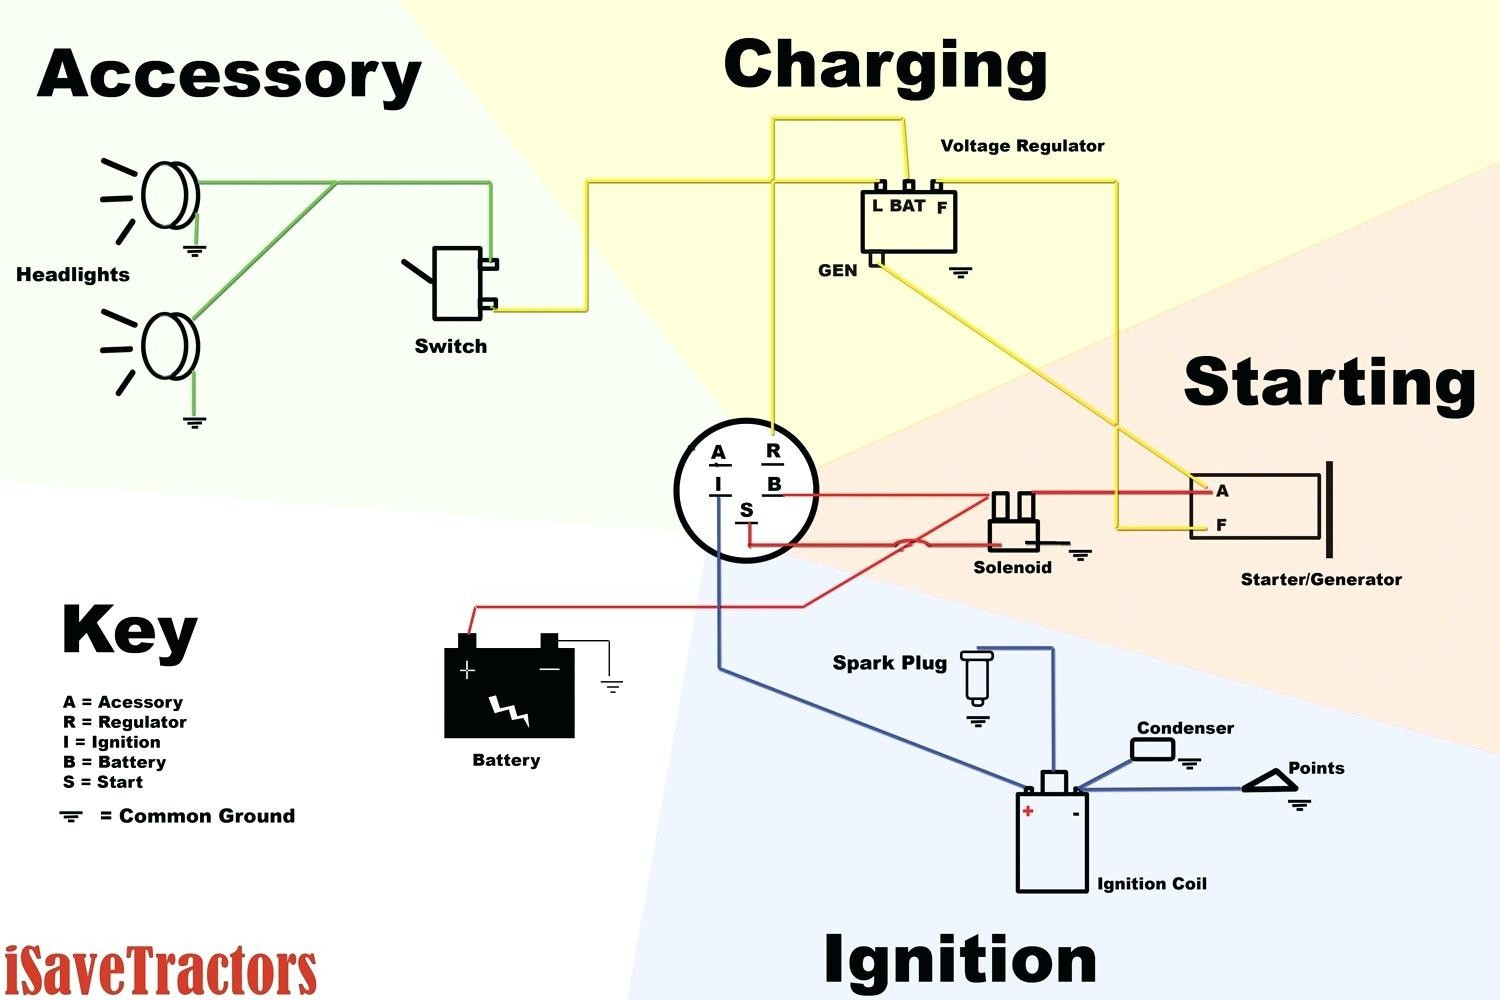 5 Wire Ignition Switch - Wiring Diagram Blog - Ignition Switch Wiring Diagram